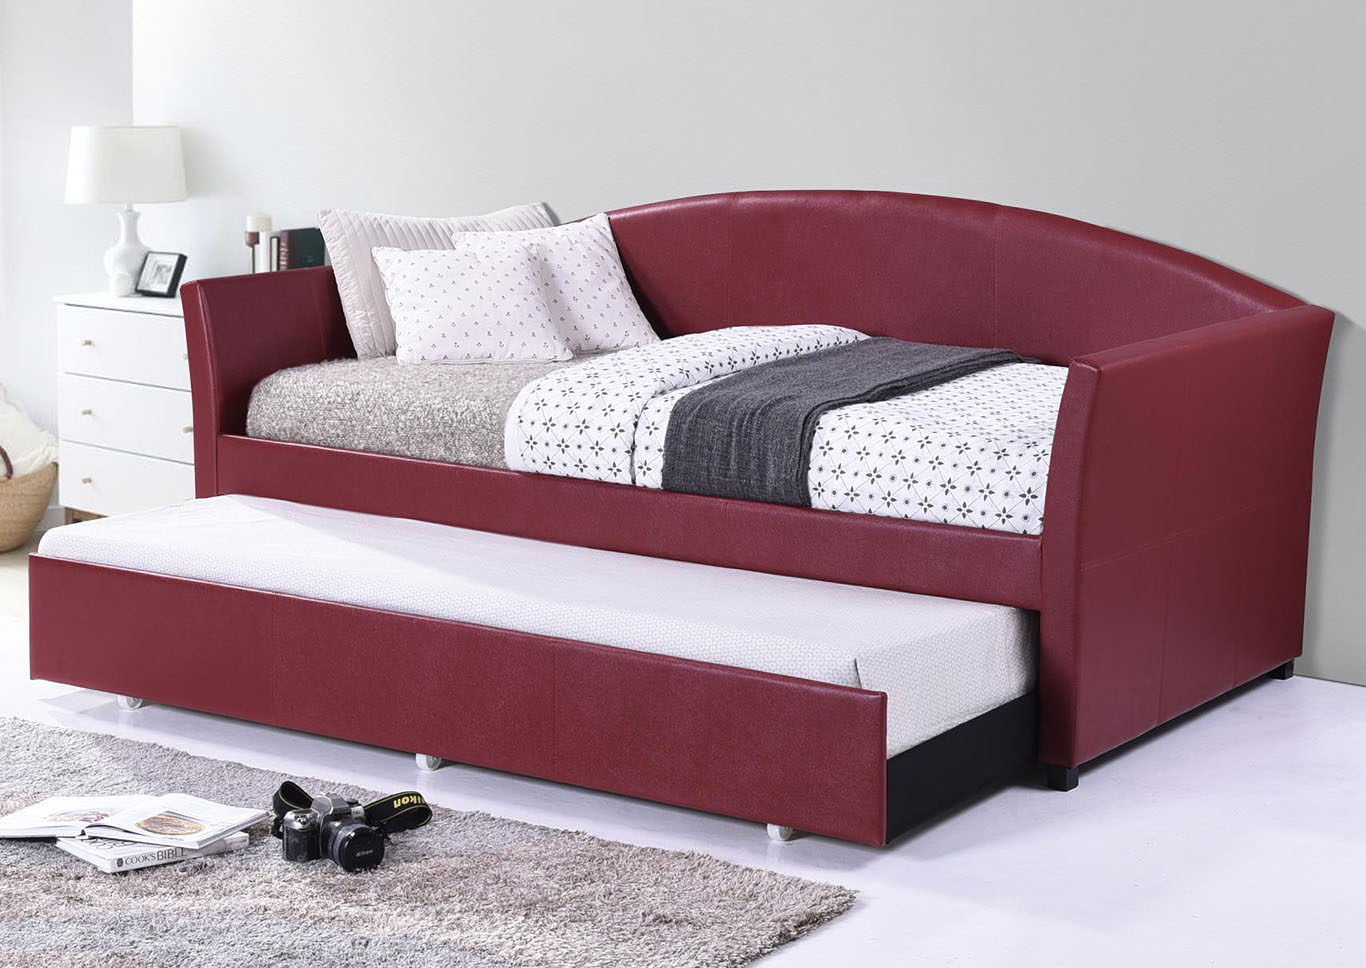 Burgundy Faux Leather Daybed W TrundleHome Source